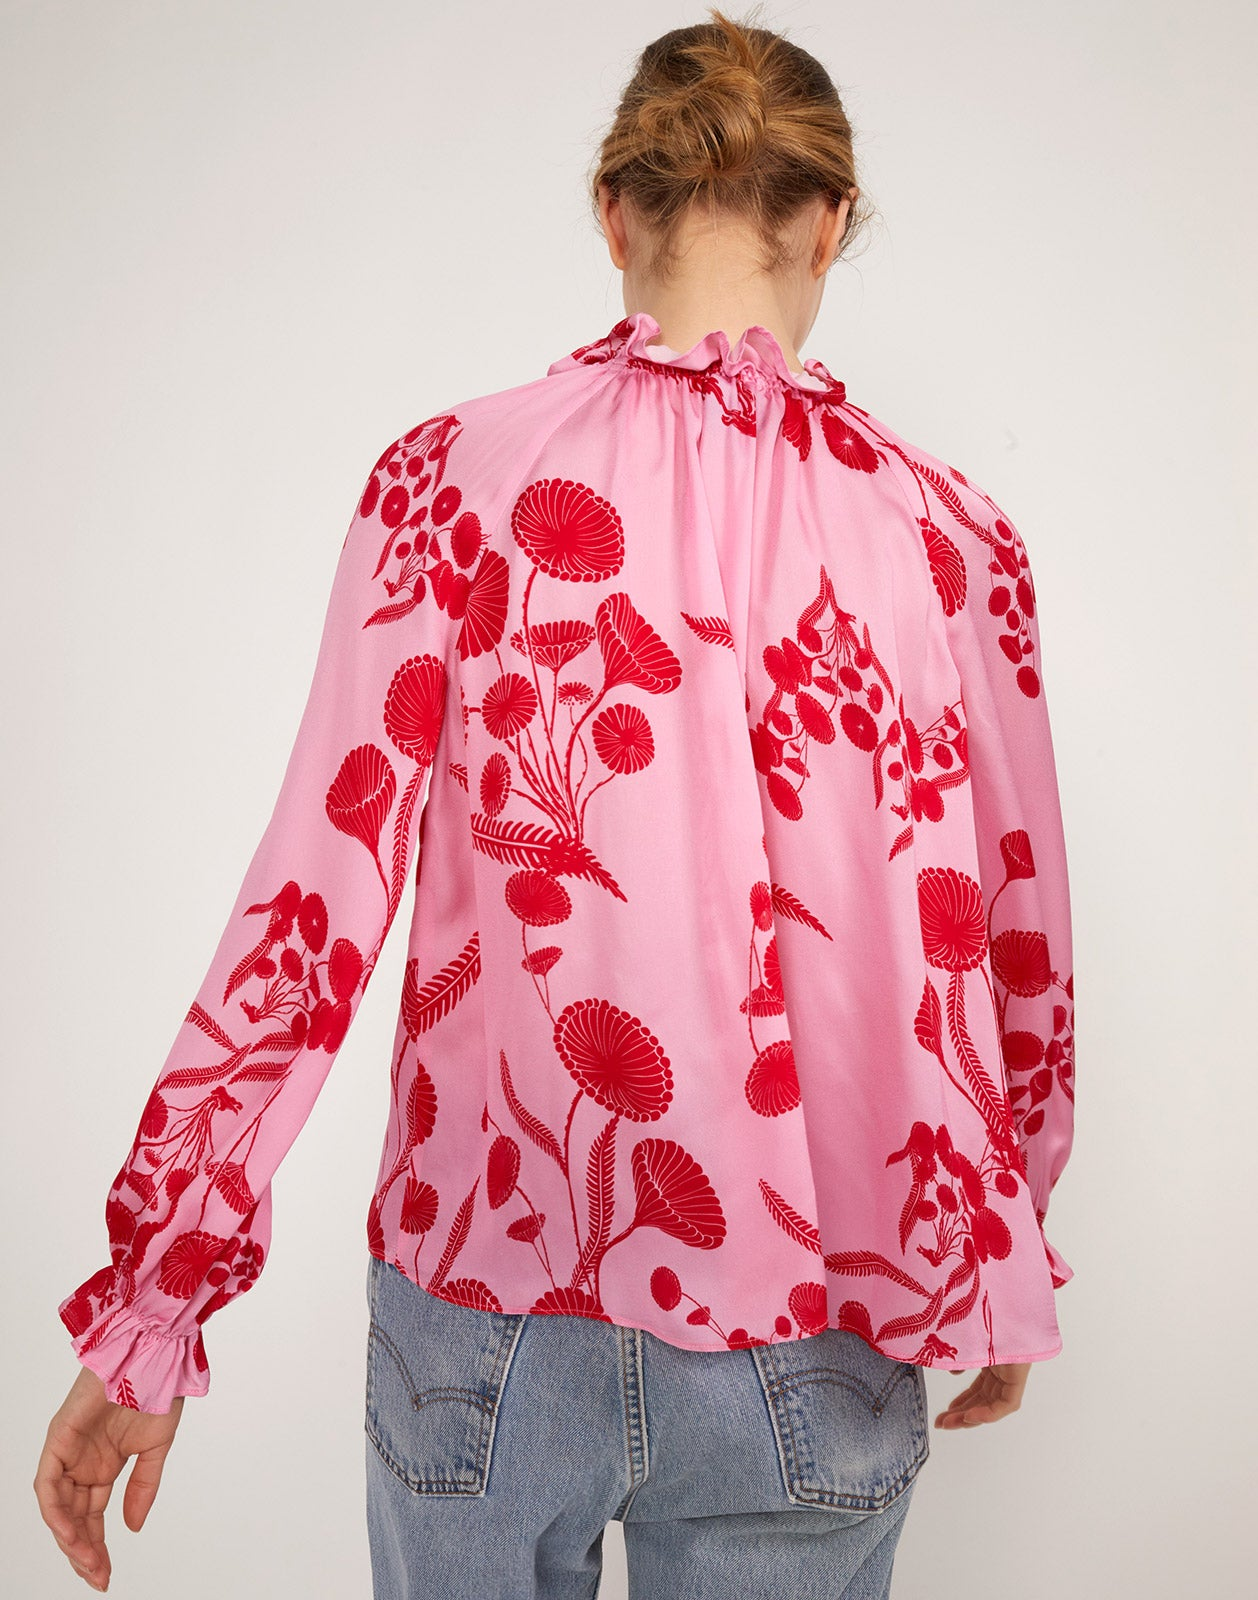 Full back view of model wearing Poppy Smocked Ruffle Top.